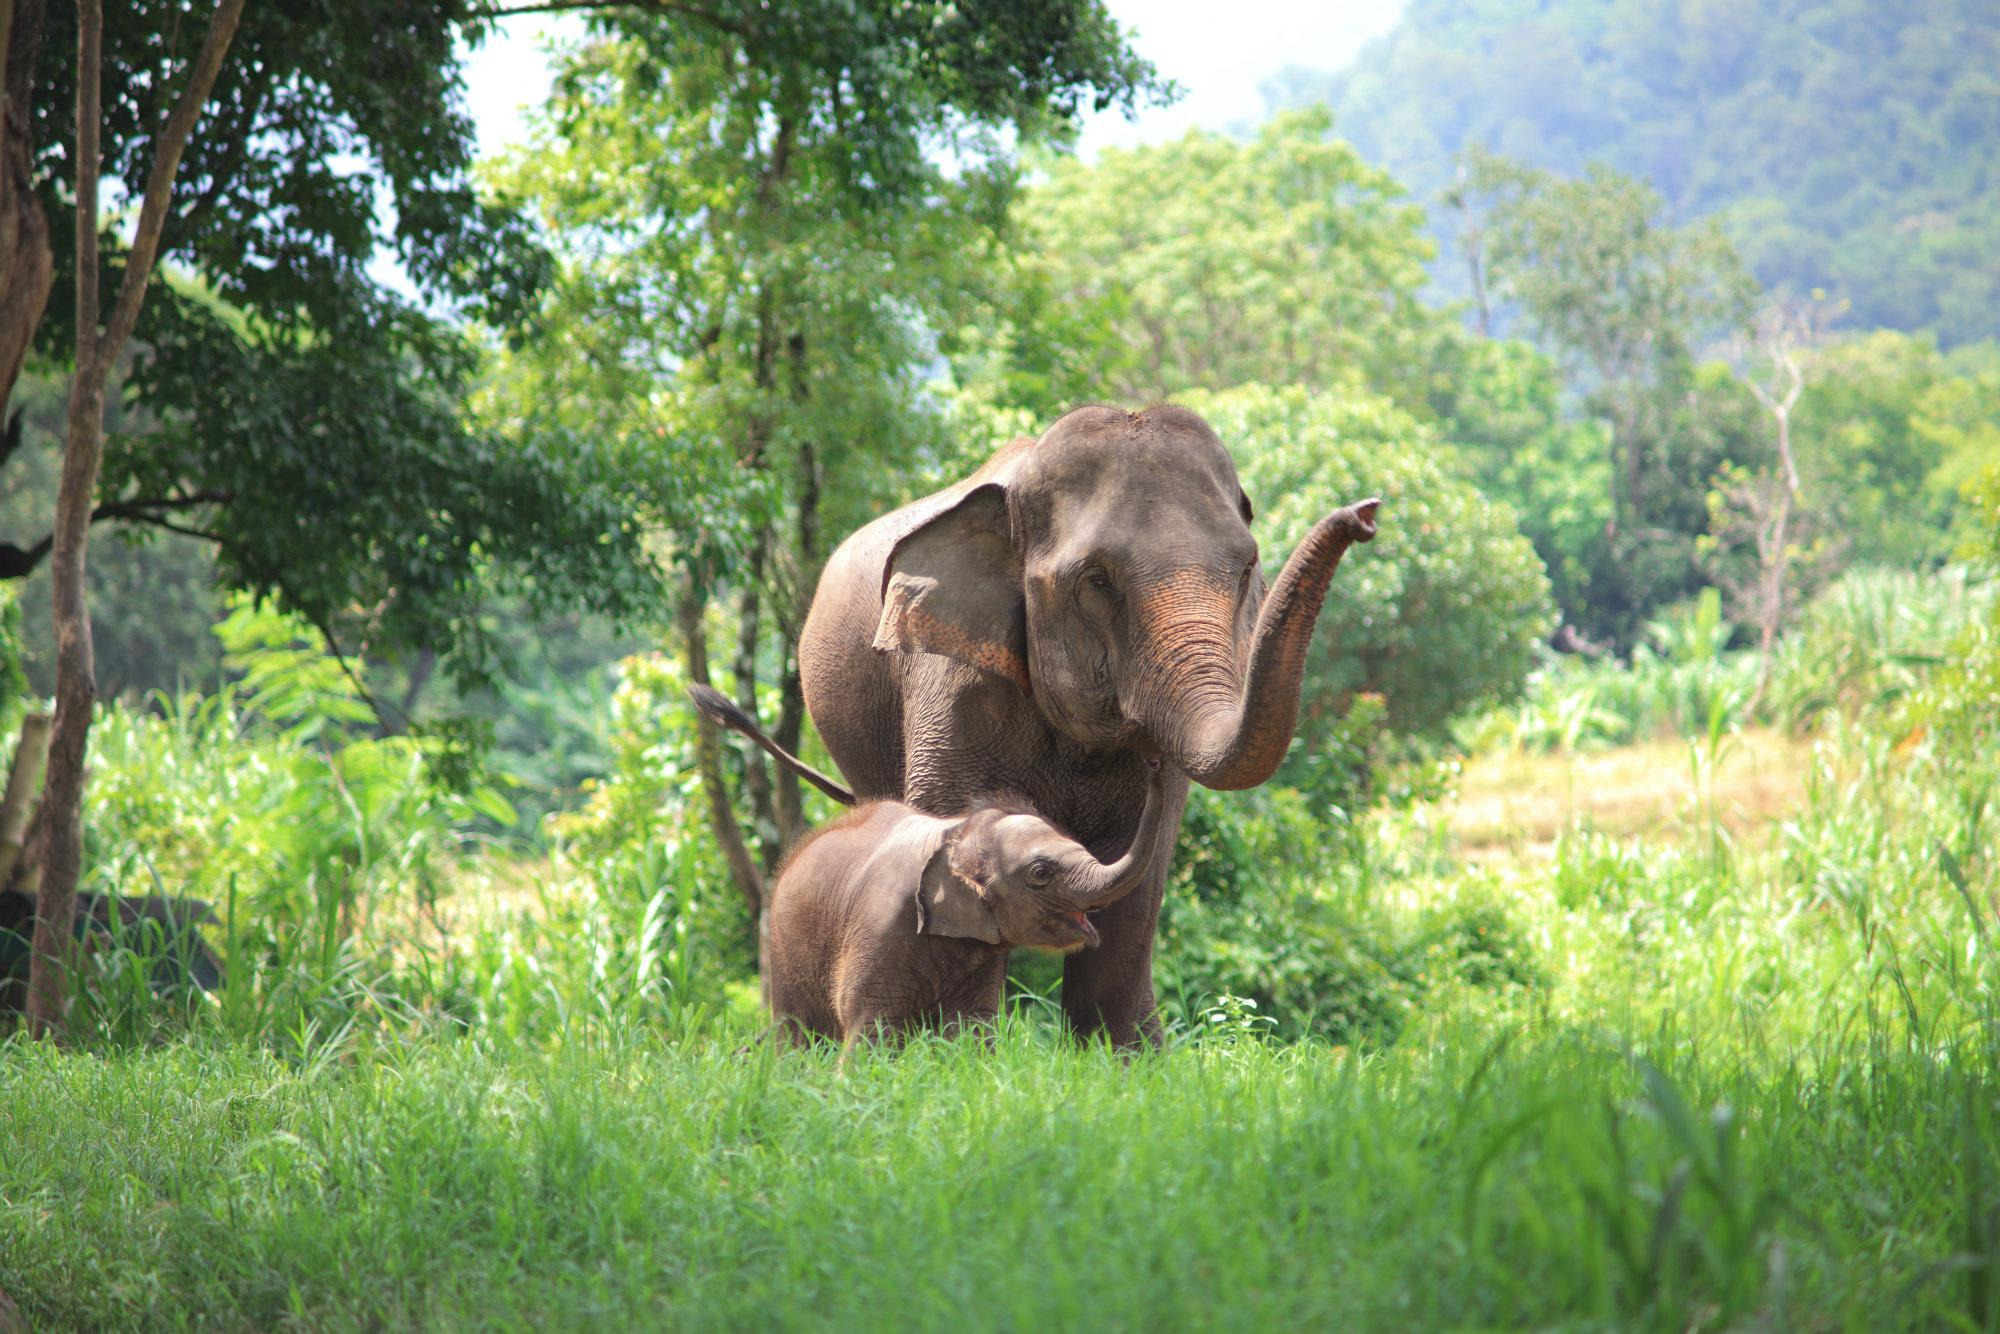 Elephant Conservation in Chiang Mai